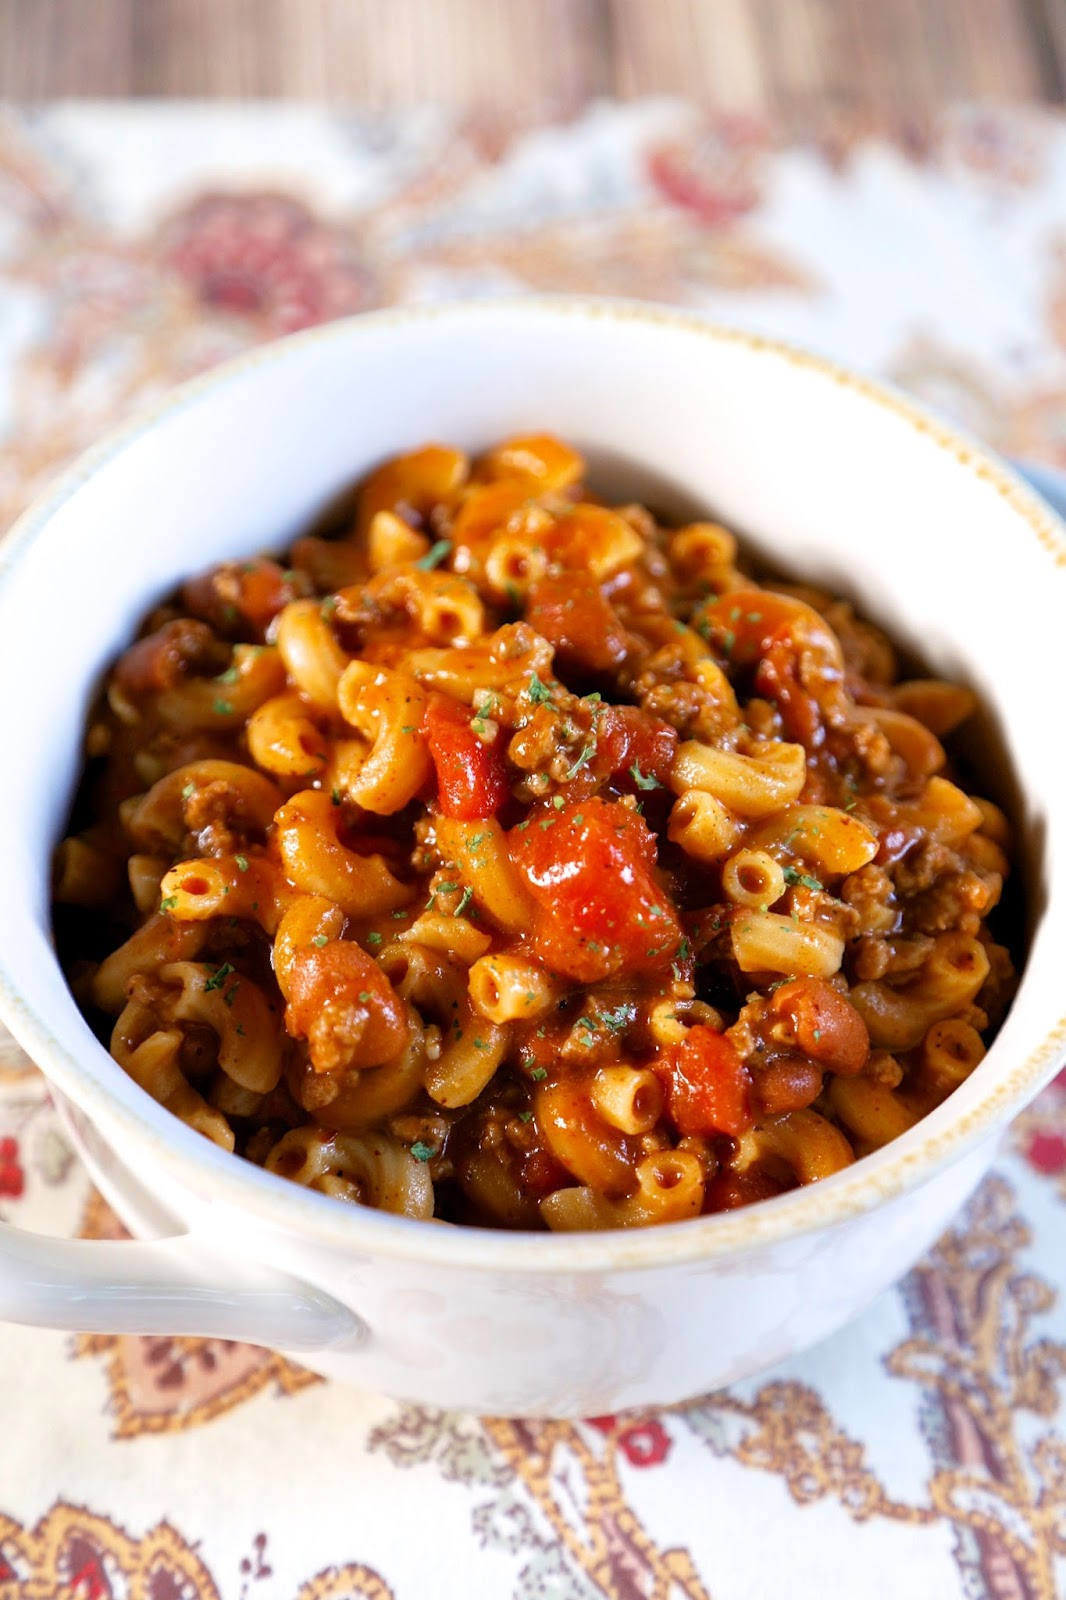 One Pot Chili Mac {No Boil} - chili and pasta simmered in the same pot! No need to precook the pasta! Great quick and easy weeknight meal!